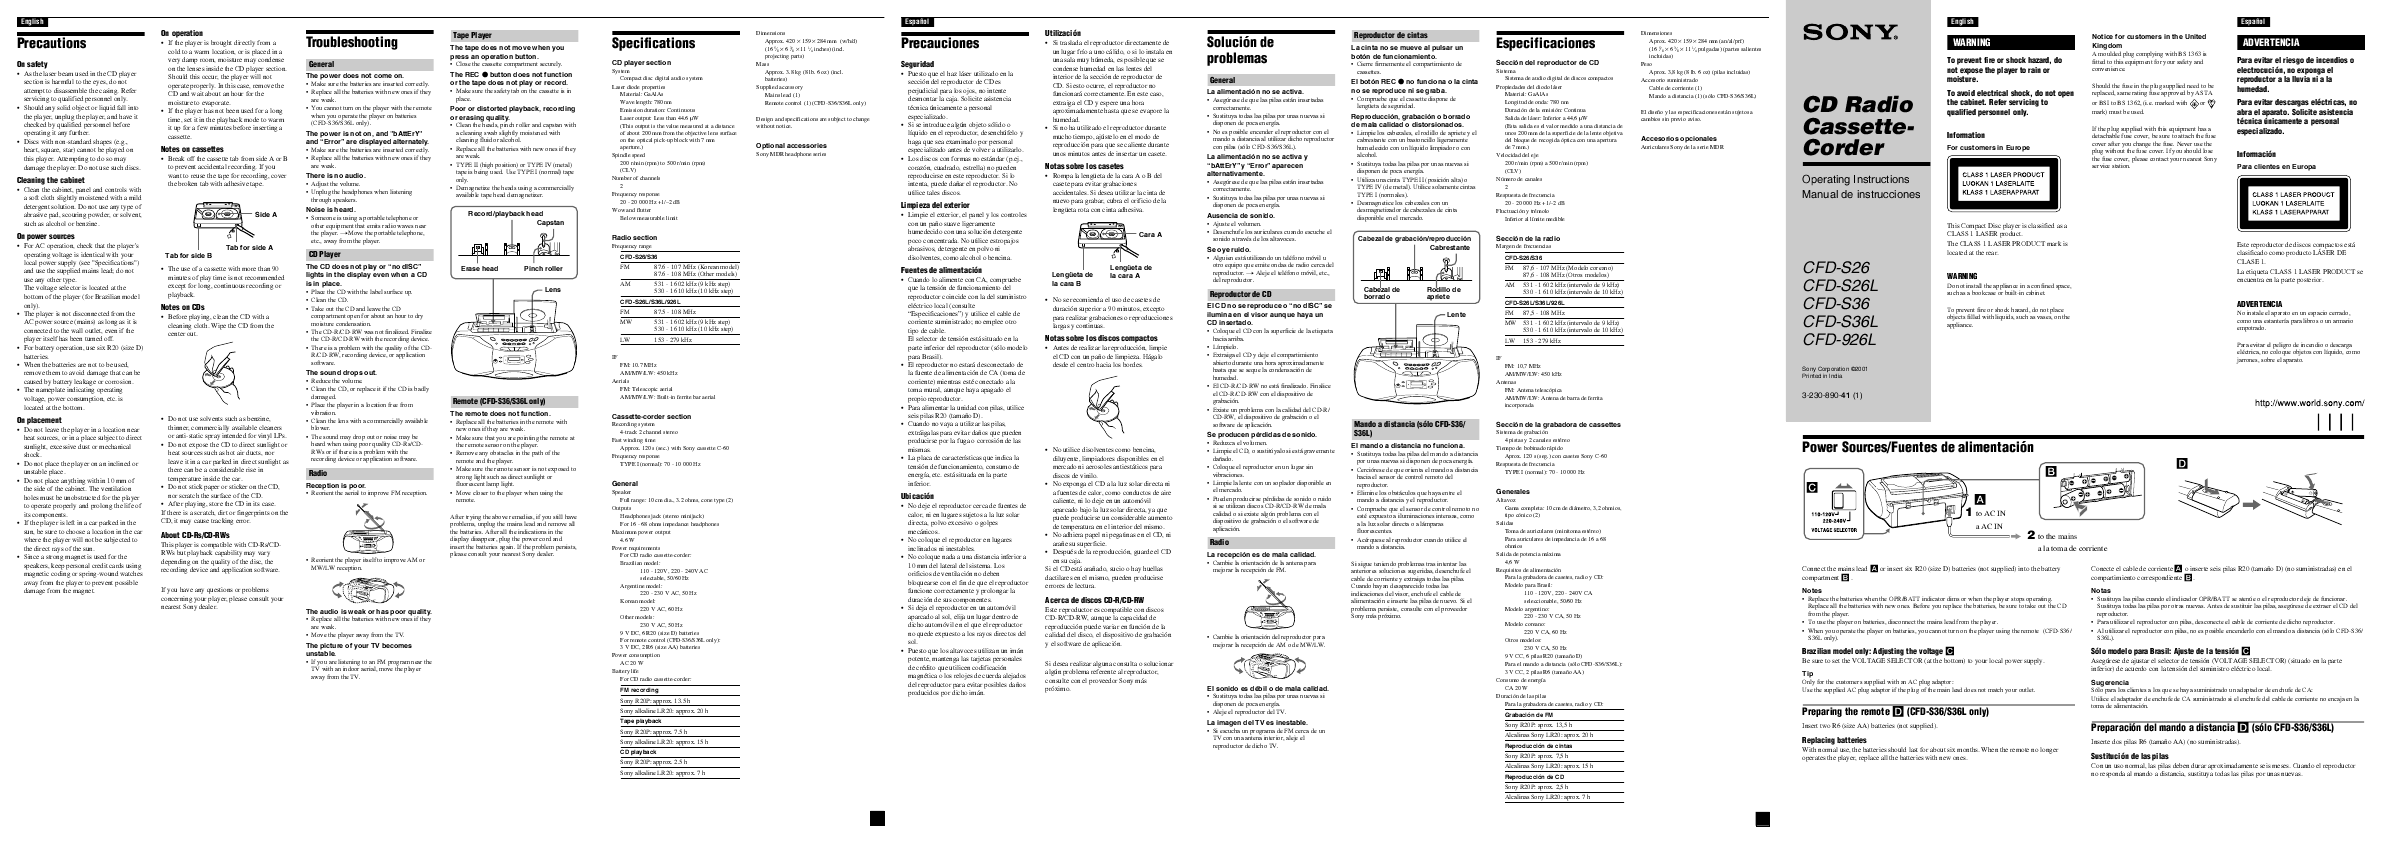 Sony Radio Cassette Player Operating Instructions